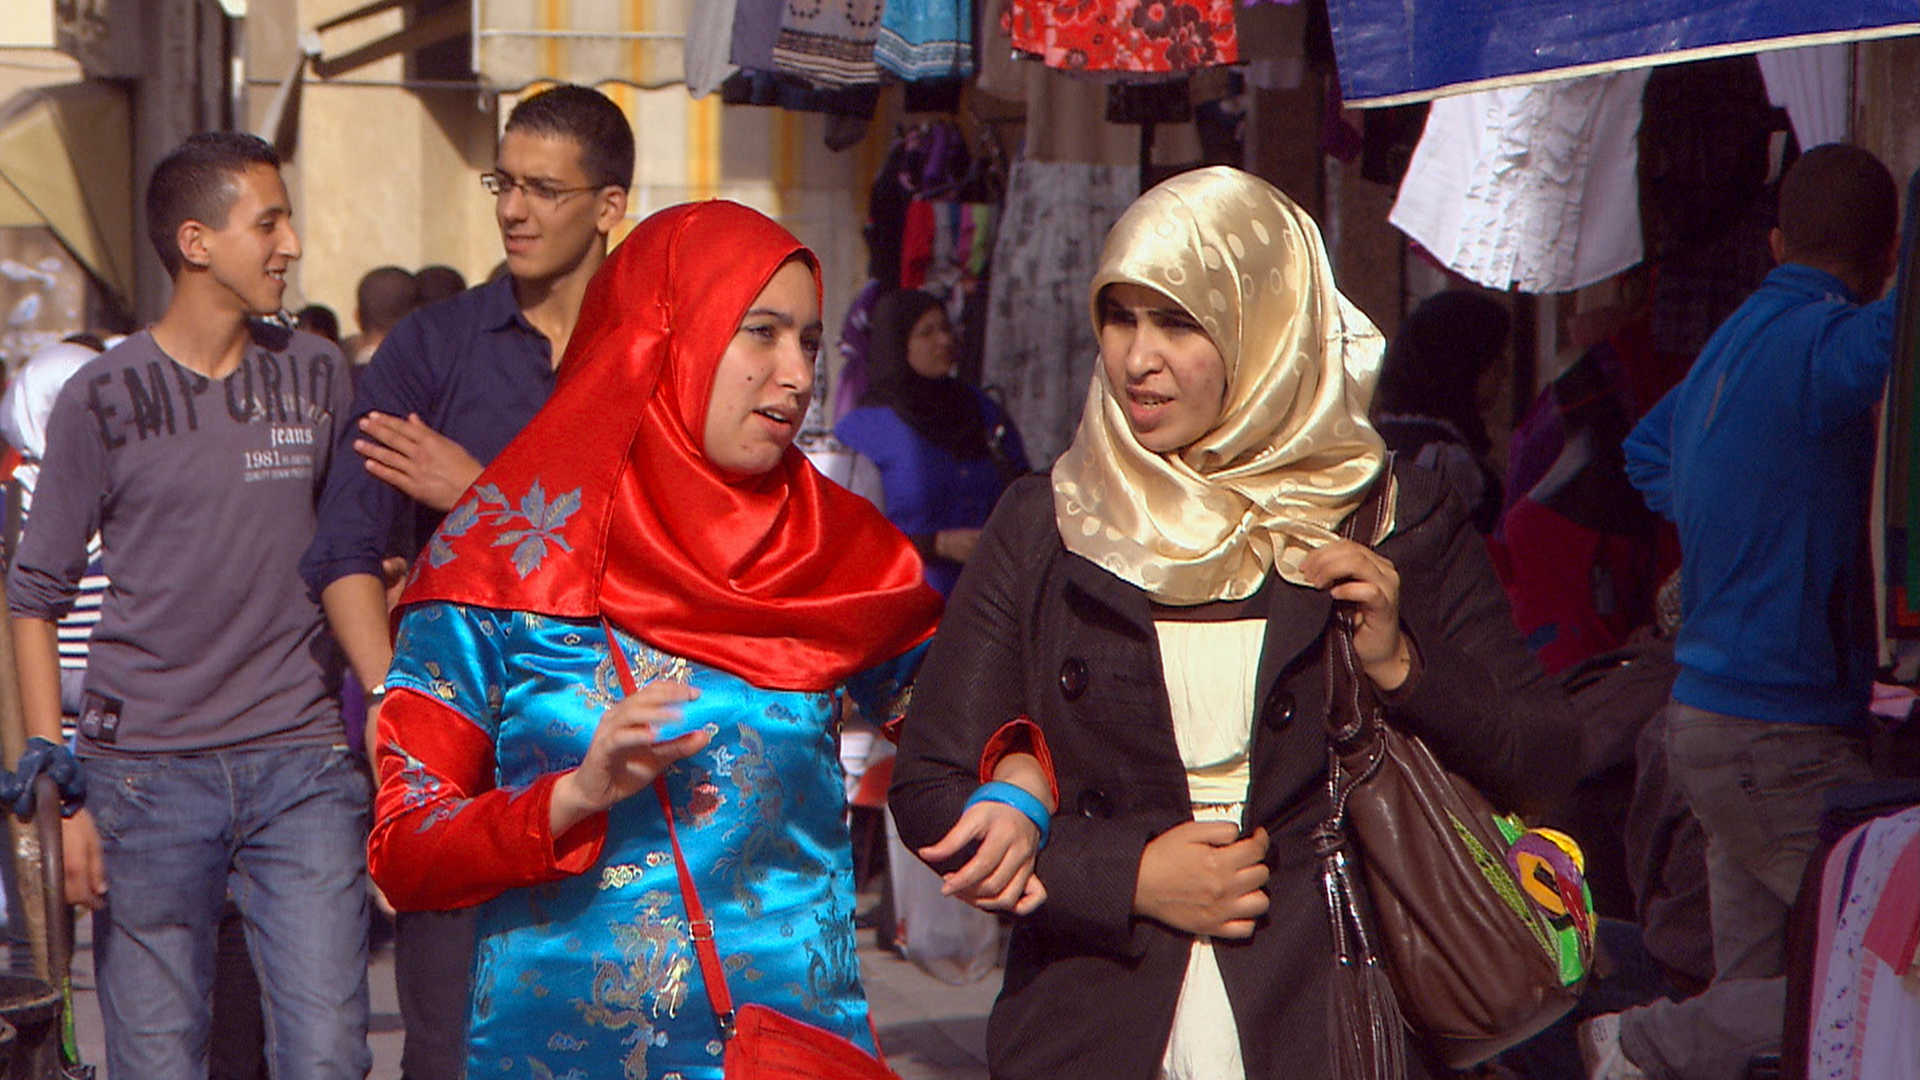 Women in the streets of Tangier